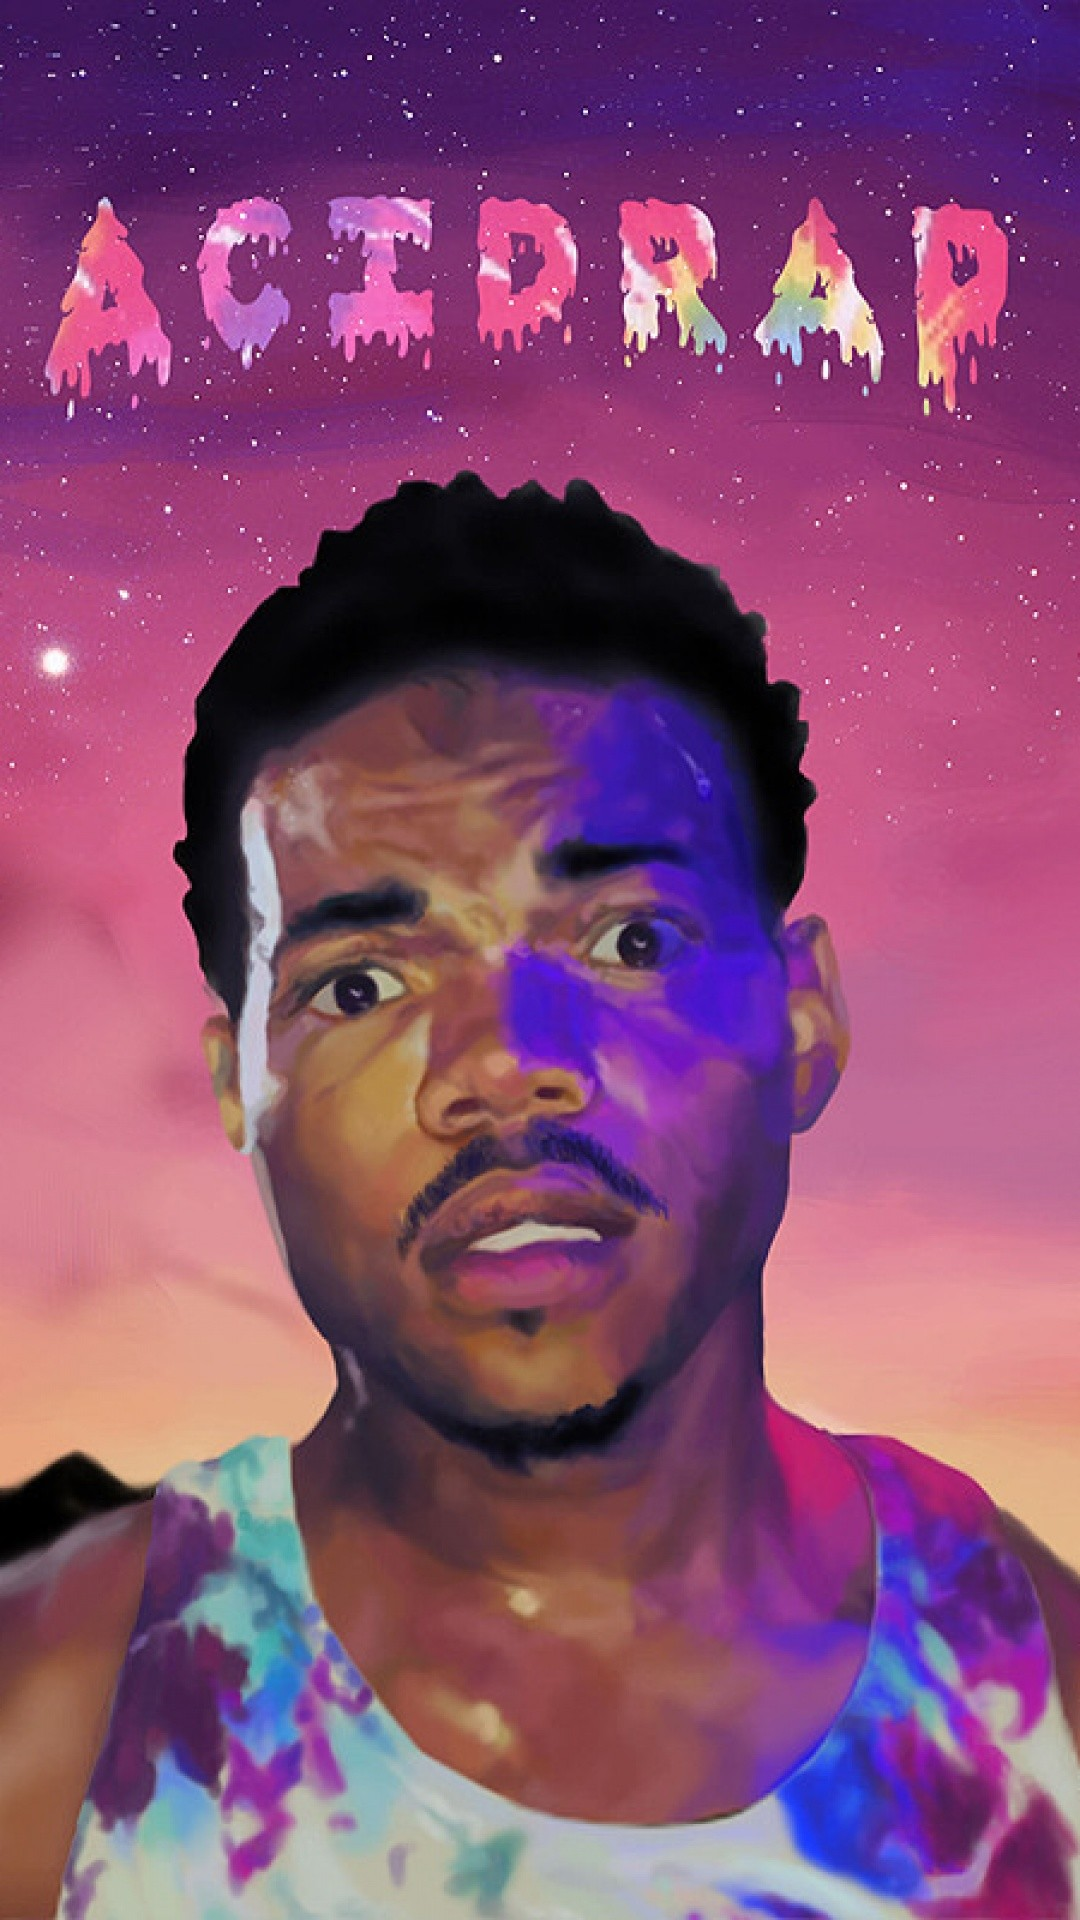 Chance The Rapper Wallpapers – Wallpaper Cave